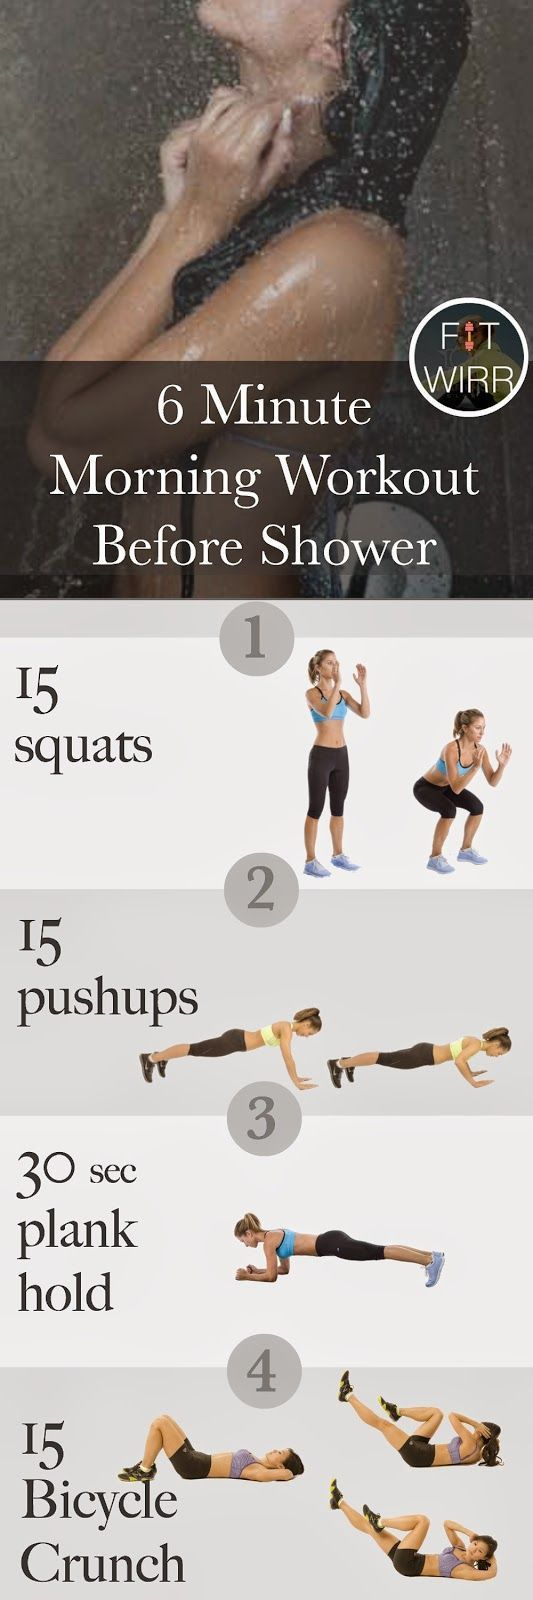 Doesn't involve a jumping jack or a burpee! I'm in! 6 Minute Morning Workout Before Shower